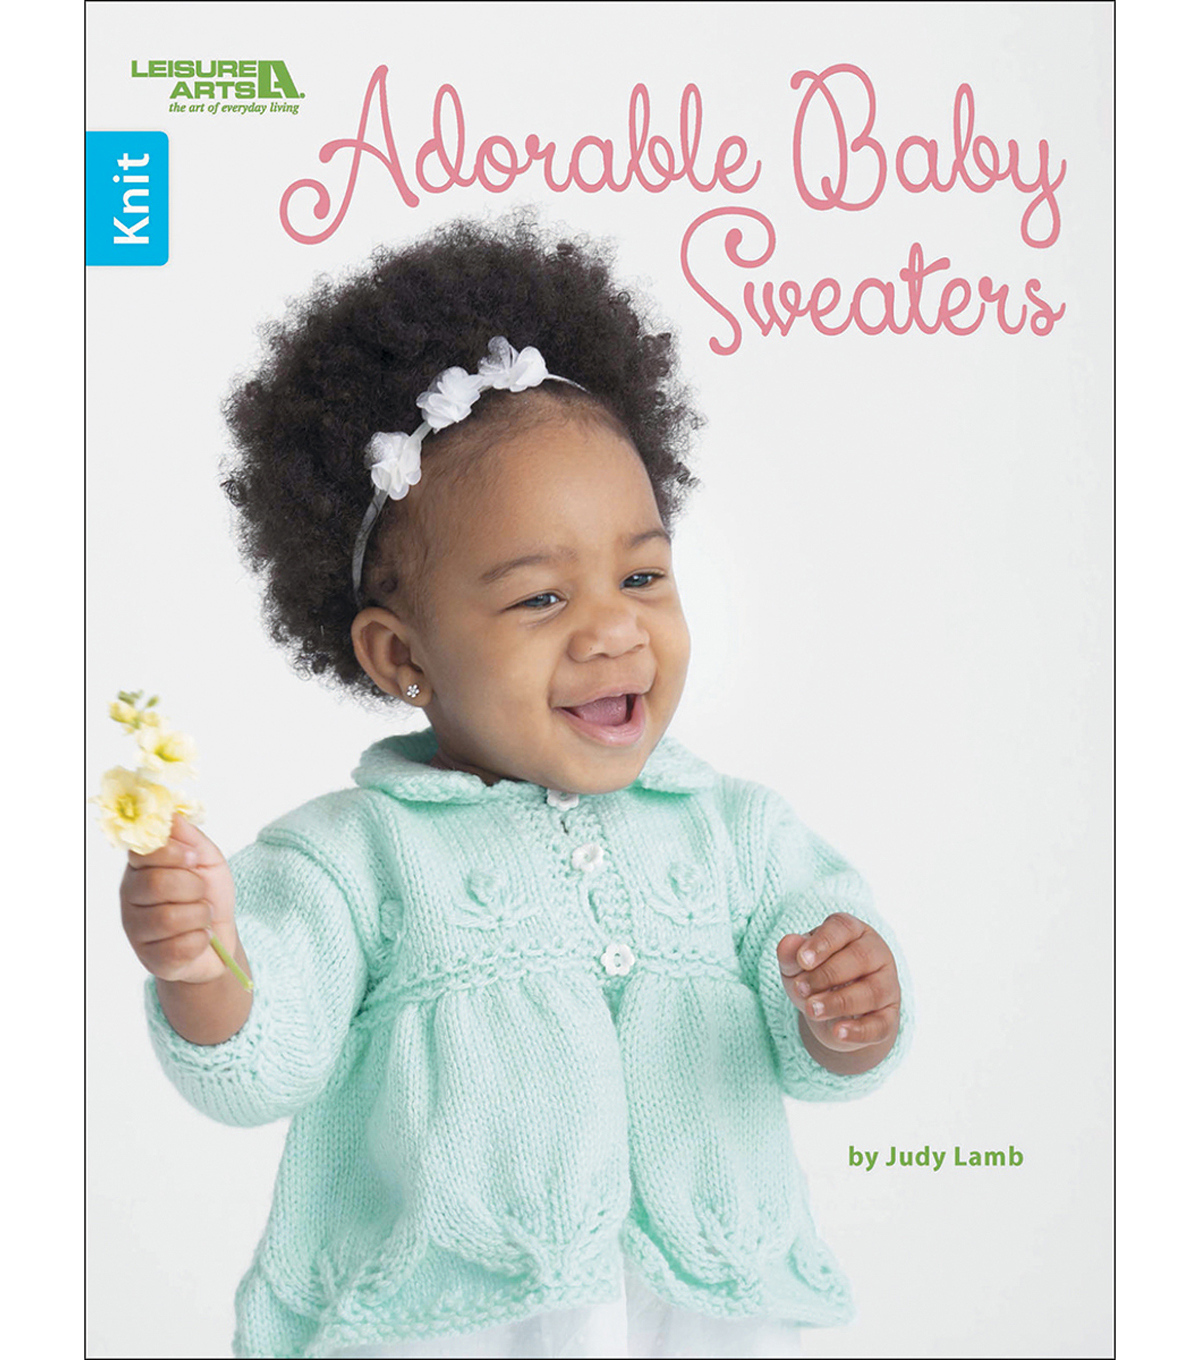 Adorable Baby Sweaters Knitting Book